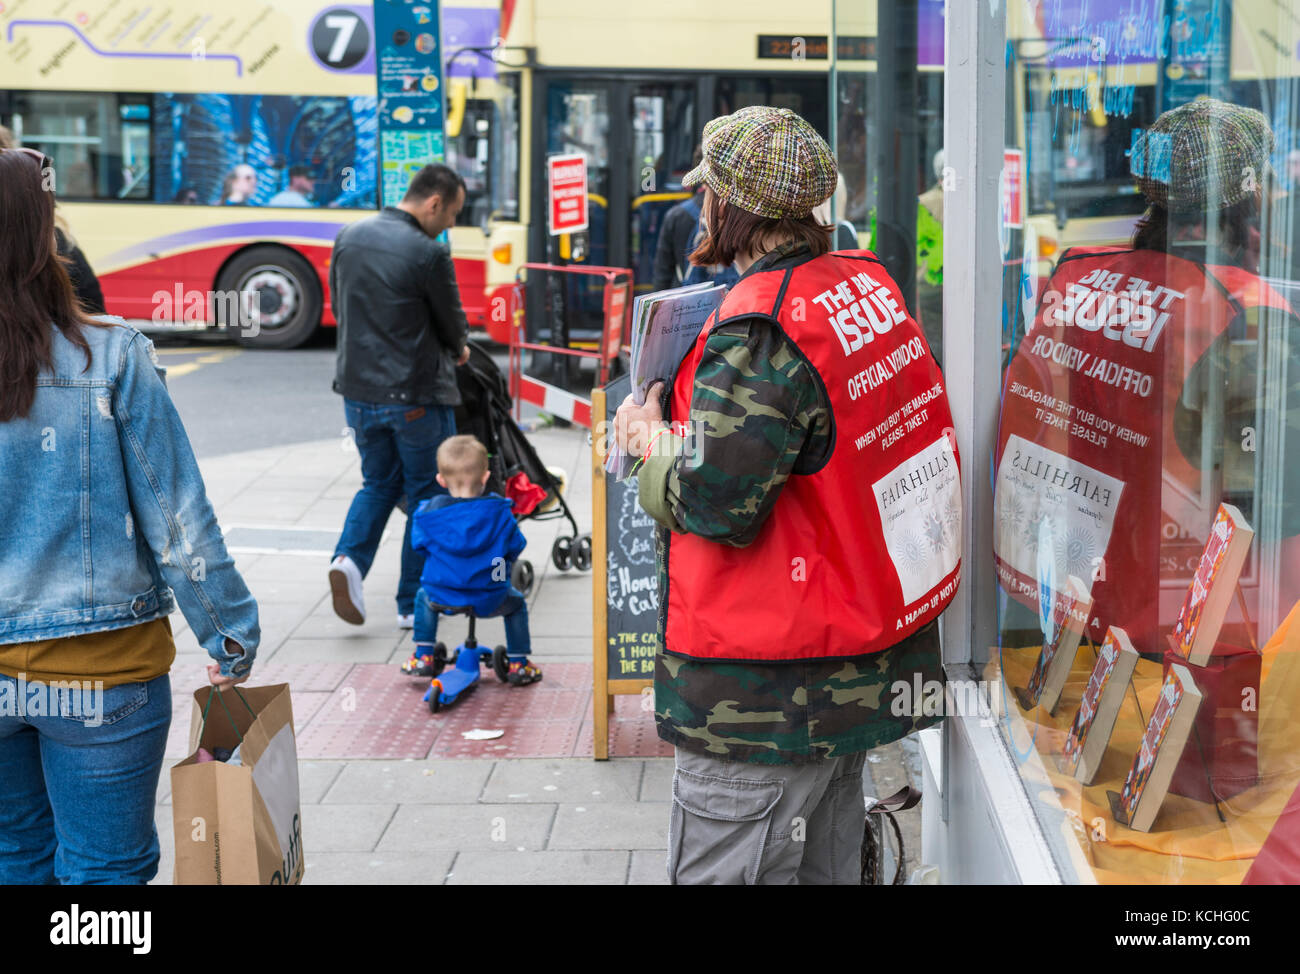 Woman on the streets as an official vendor of the Big Issue magazine in Brighton, East Sussex, England, UK. - Stock Image